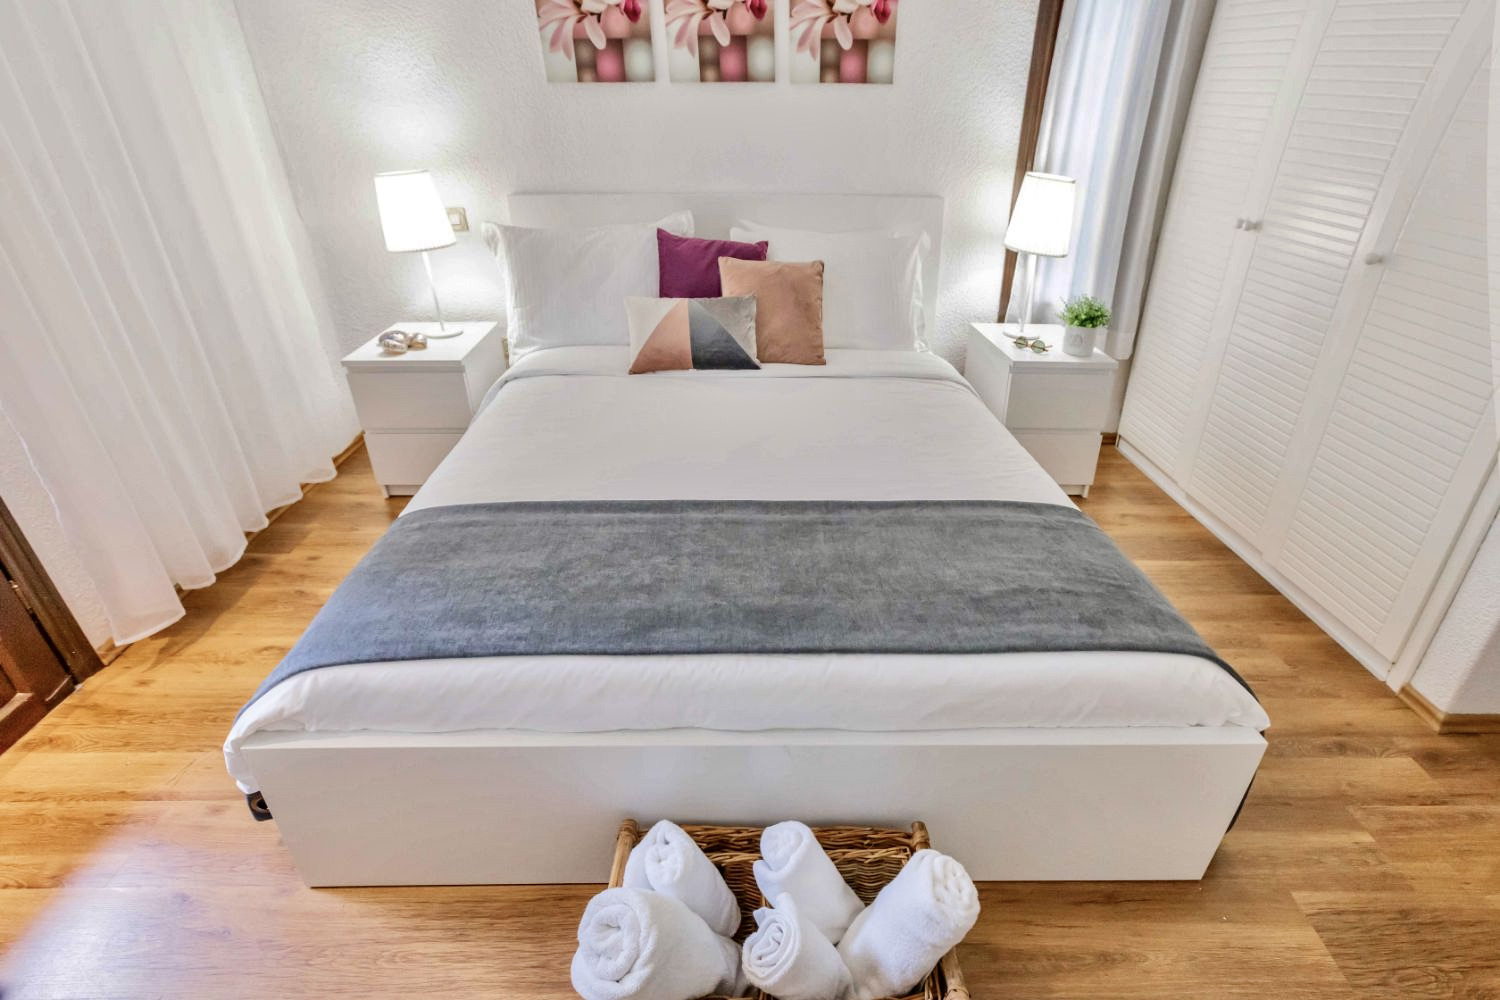 Bedroom 1, with double bed